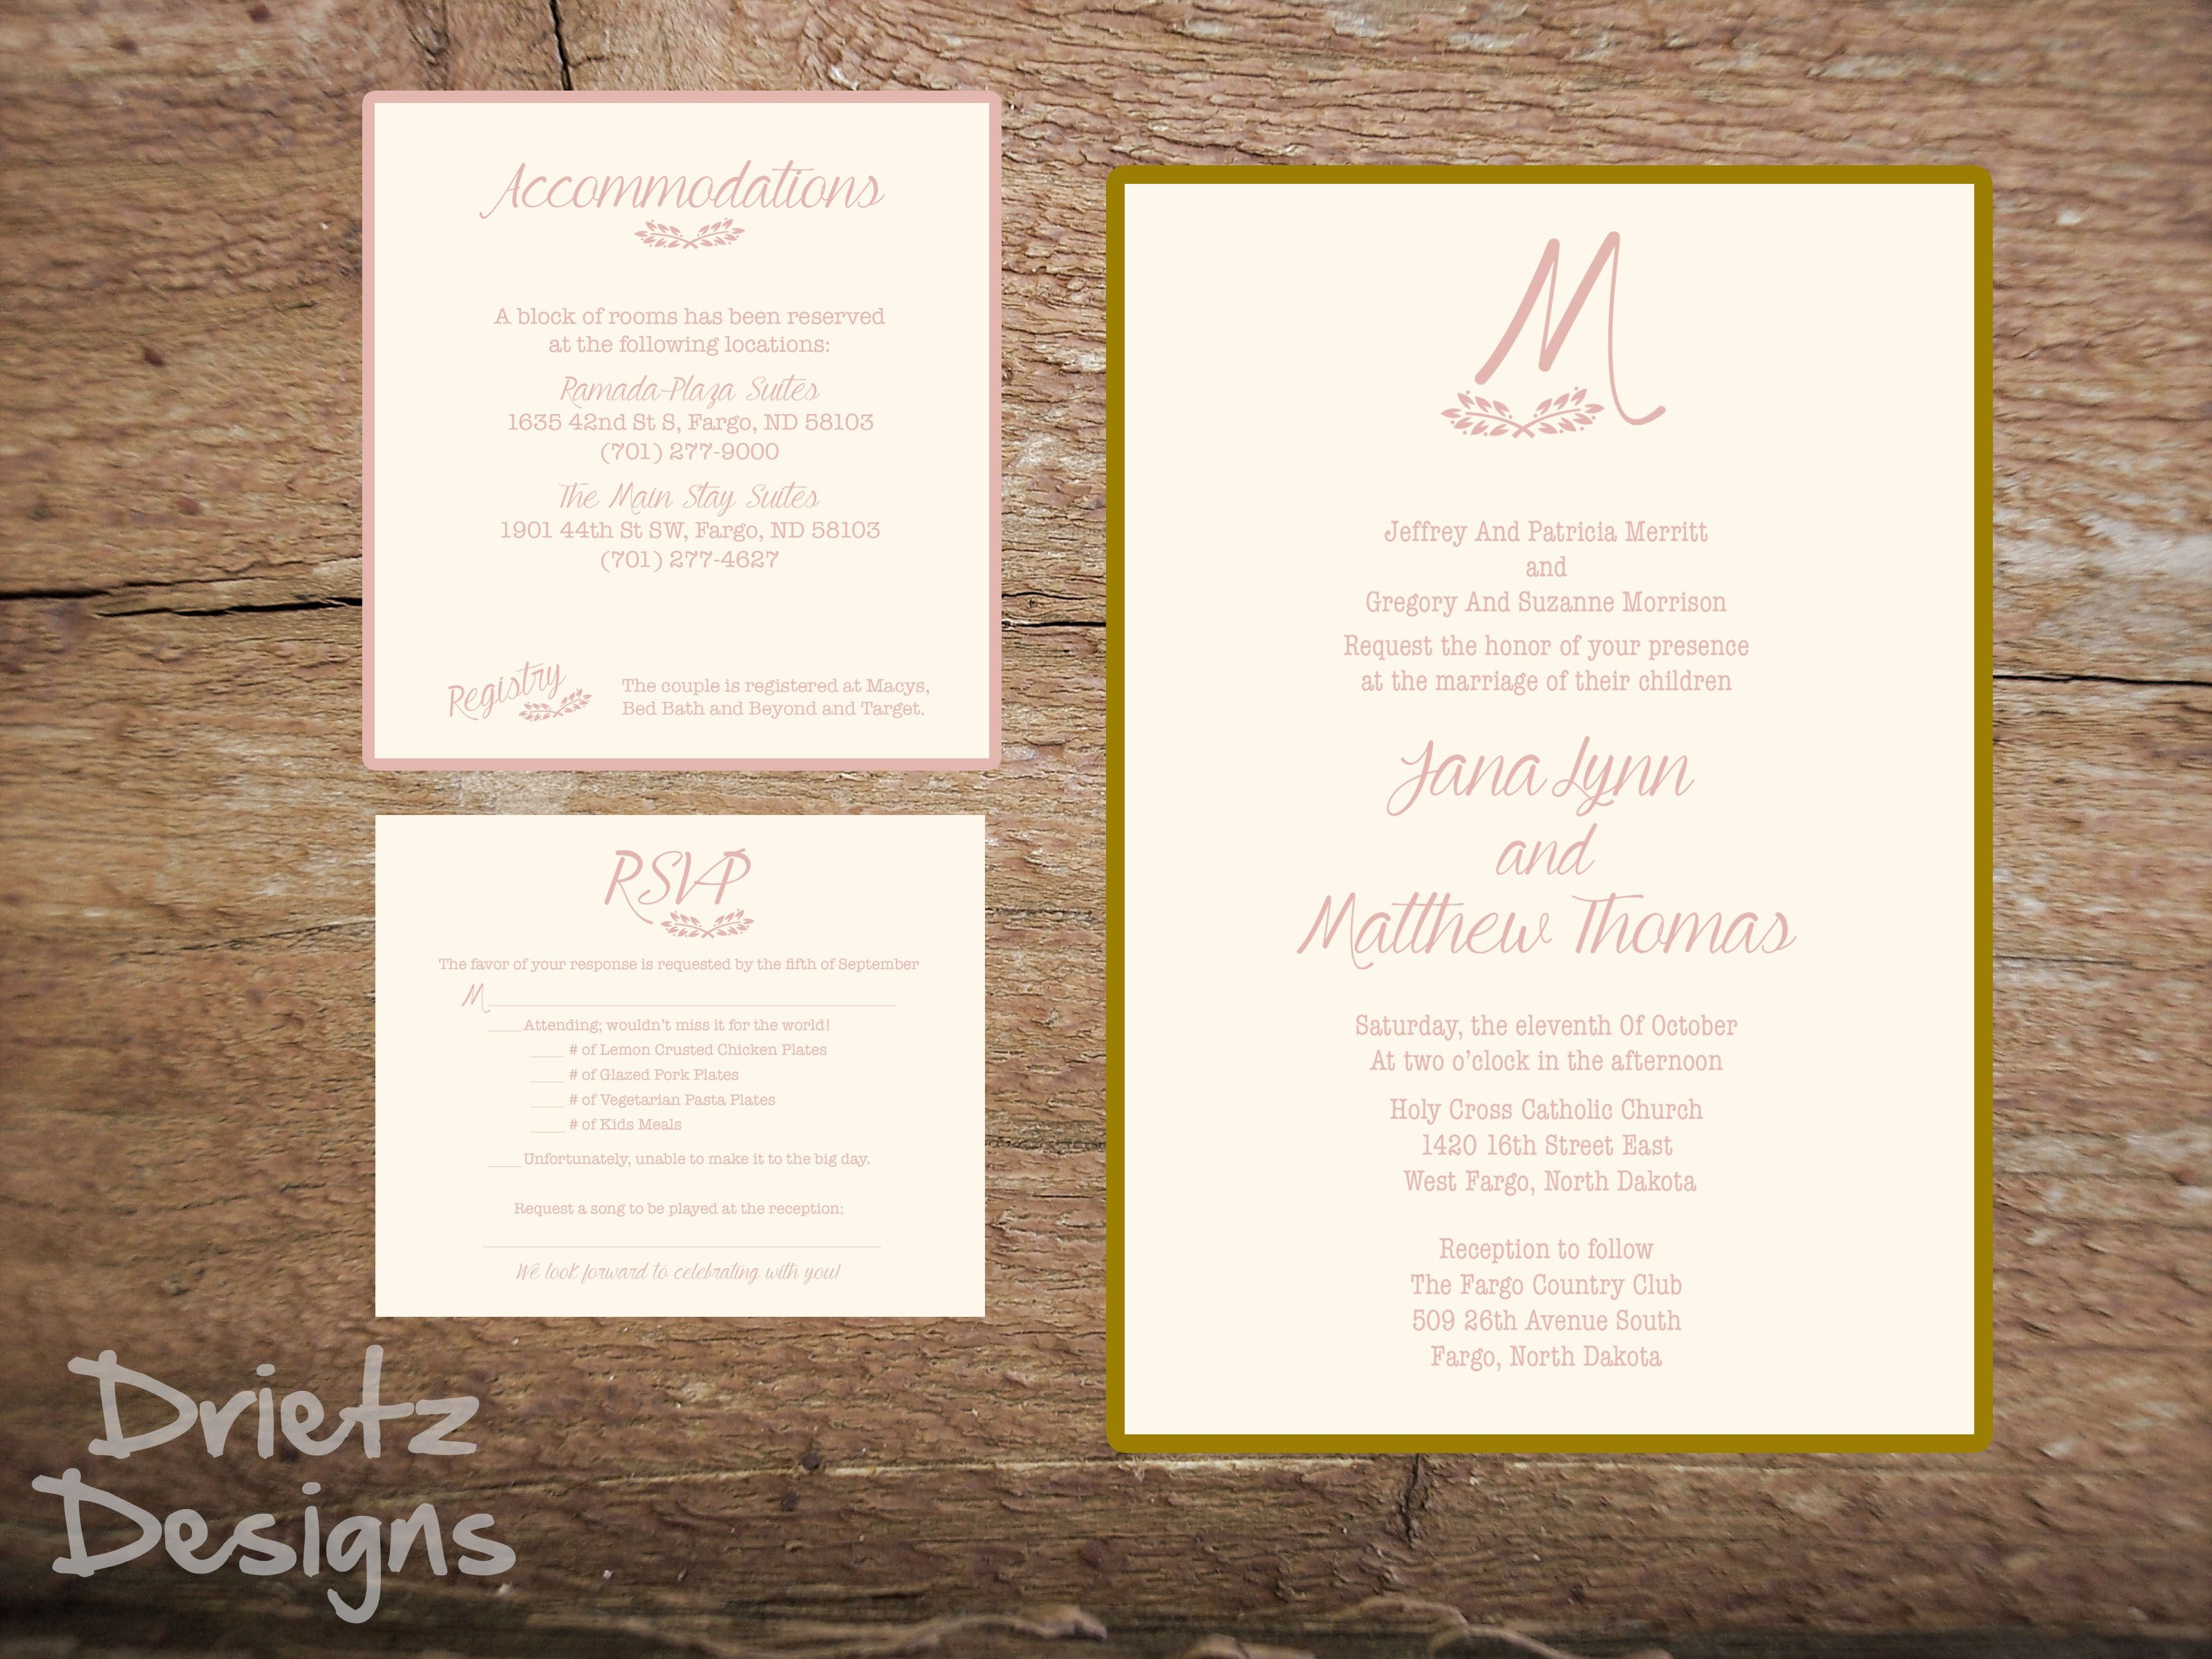 bridal shower invitations registry etiquette%0A Pink and Gold wedding invitation  can be custom made for your wedding   Feel free